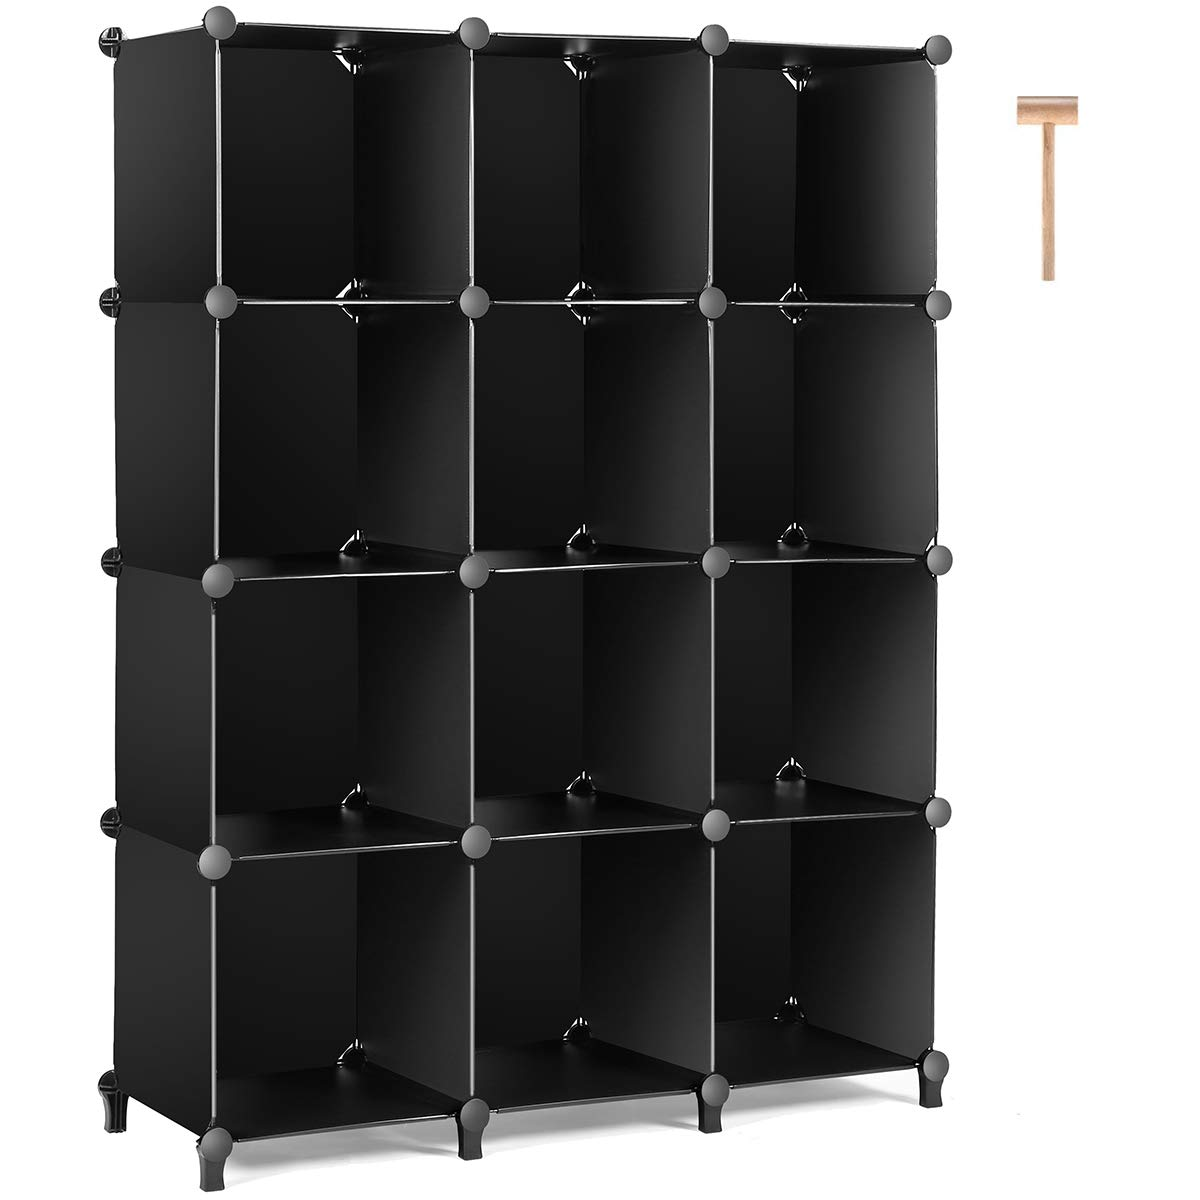 TomCare Cube Storage 12-Cube Bookshelf Closet Organizer Storage Shelves Shelf Cubes Organizer Plastic Book Shelf Bookcase DIY Square Closet Cabinet Shelves for Bedroom Office Living Room, Black by TomCare